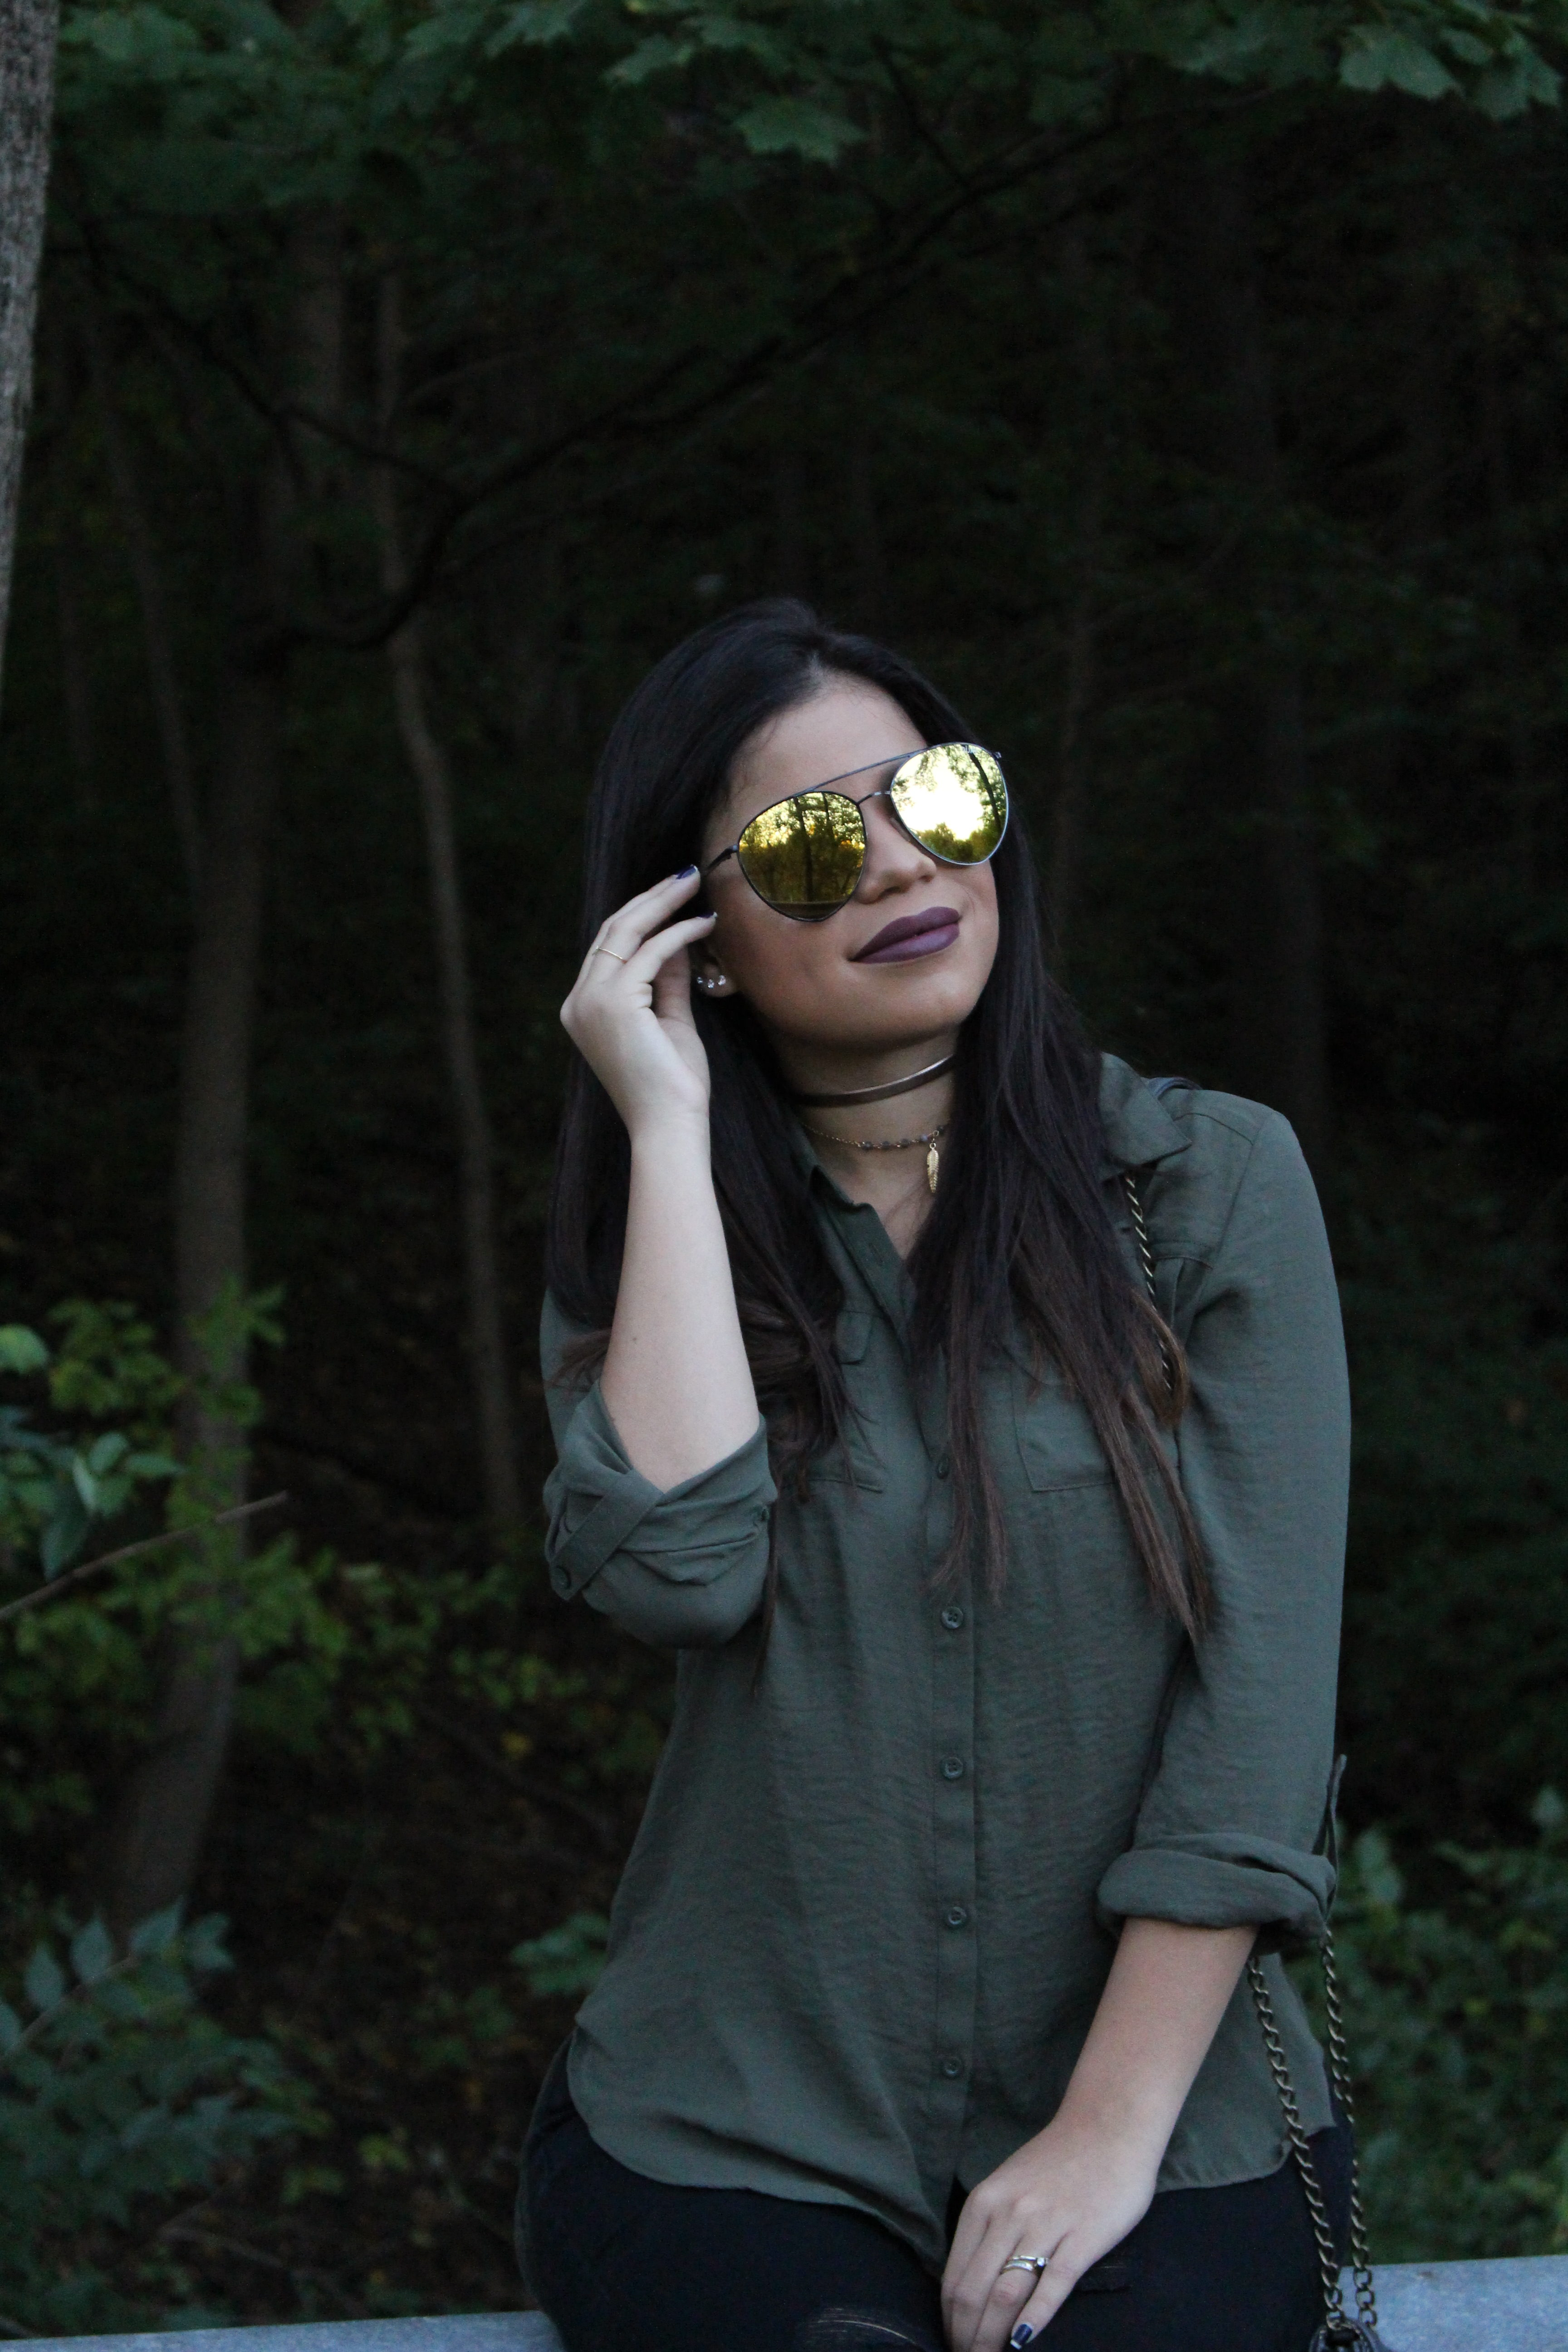 Olive Blouse old navy rockstar jeans steve madden bag fall outfit charlotte russe olive booties quay australia shades outfit idea OOTN by Alejandra Avila TuFashionPetite